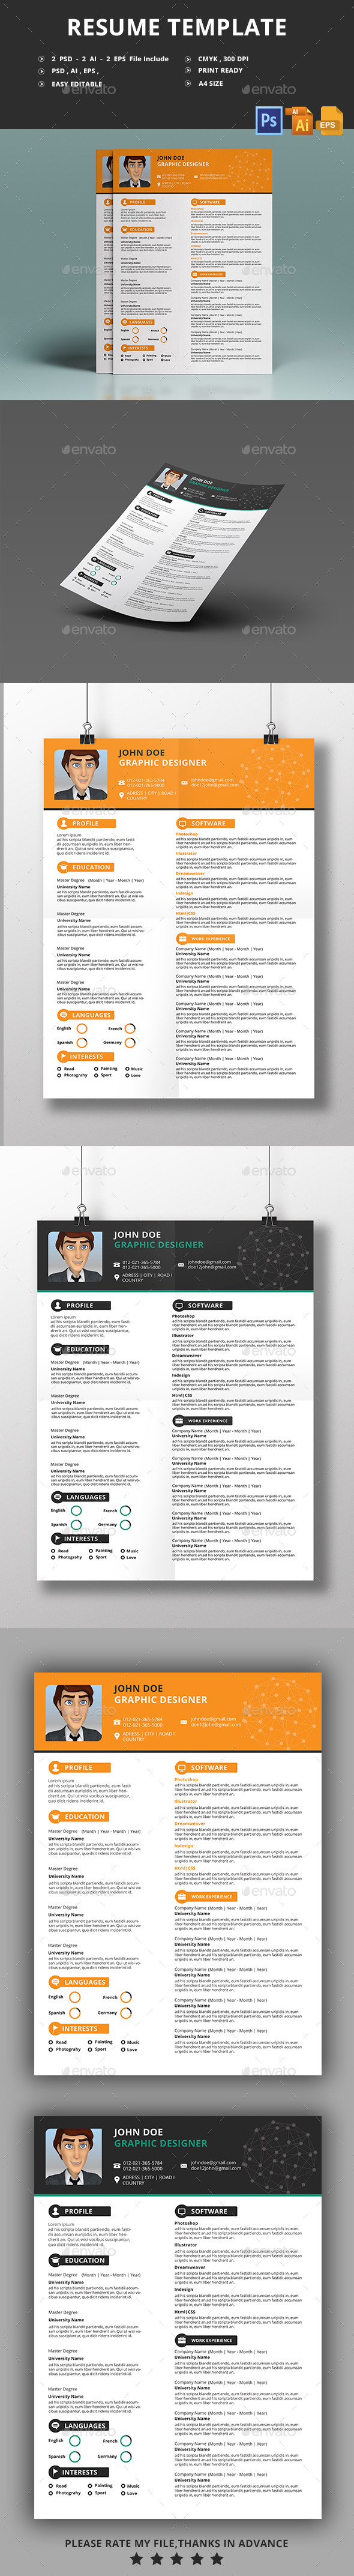 GraphicRiver Resume Template 11527836